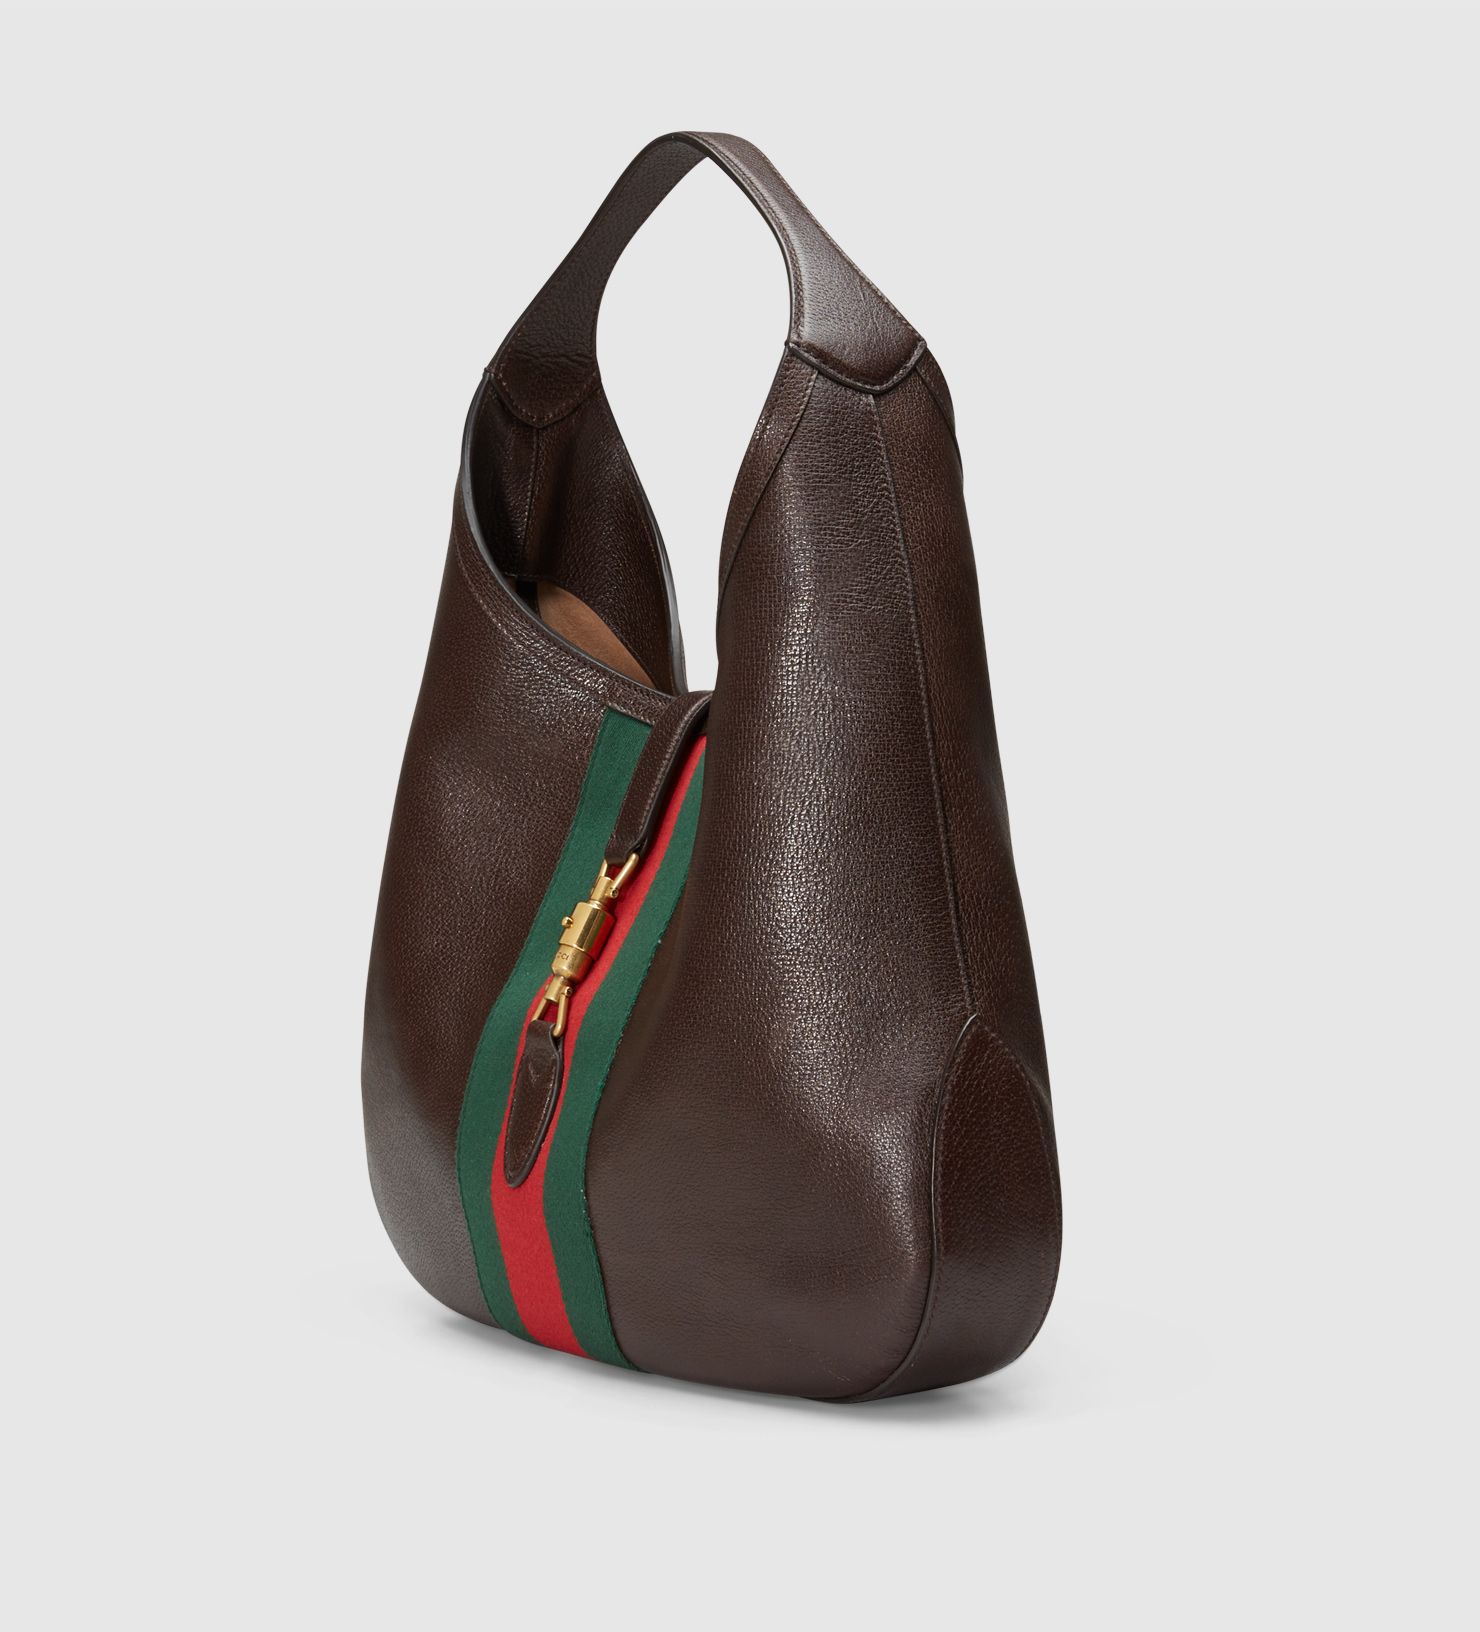 8cc7cf79e4a4 Gucci Jackie Soft Leather Hobo in Black - Lyst